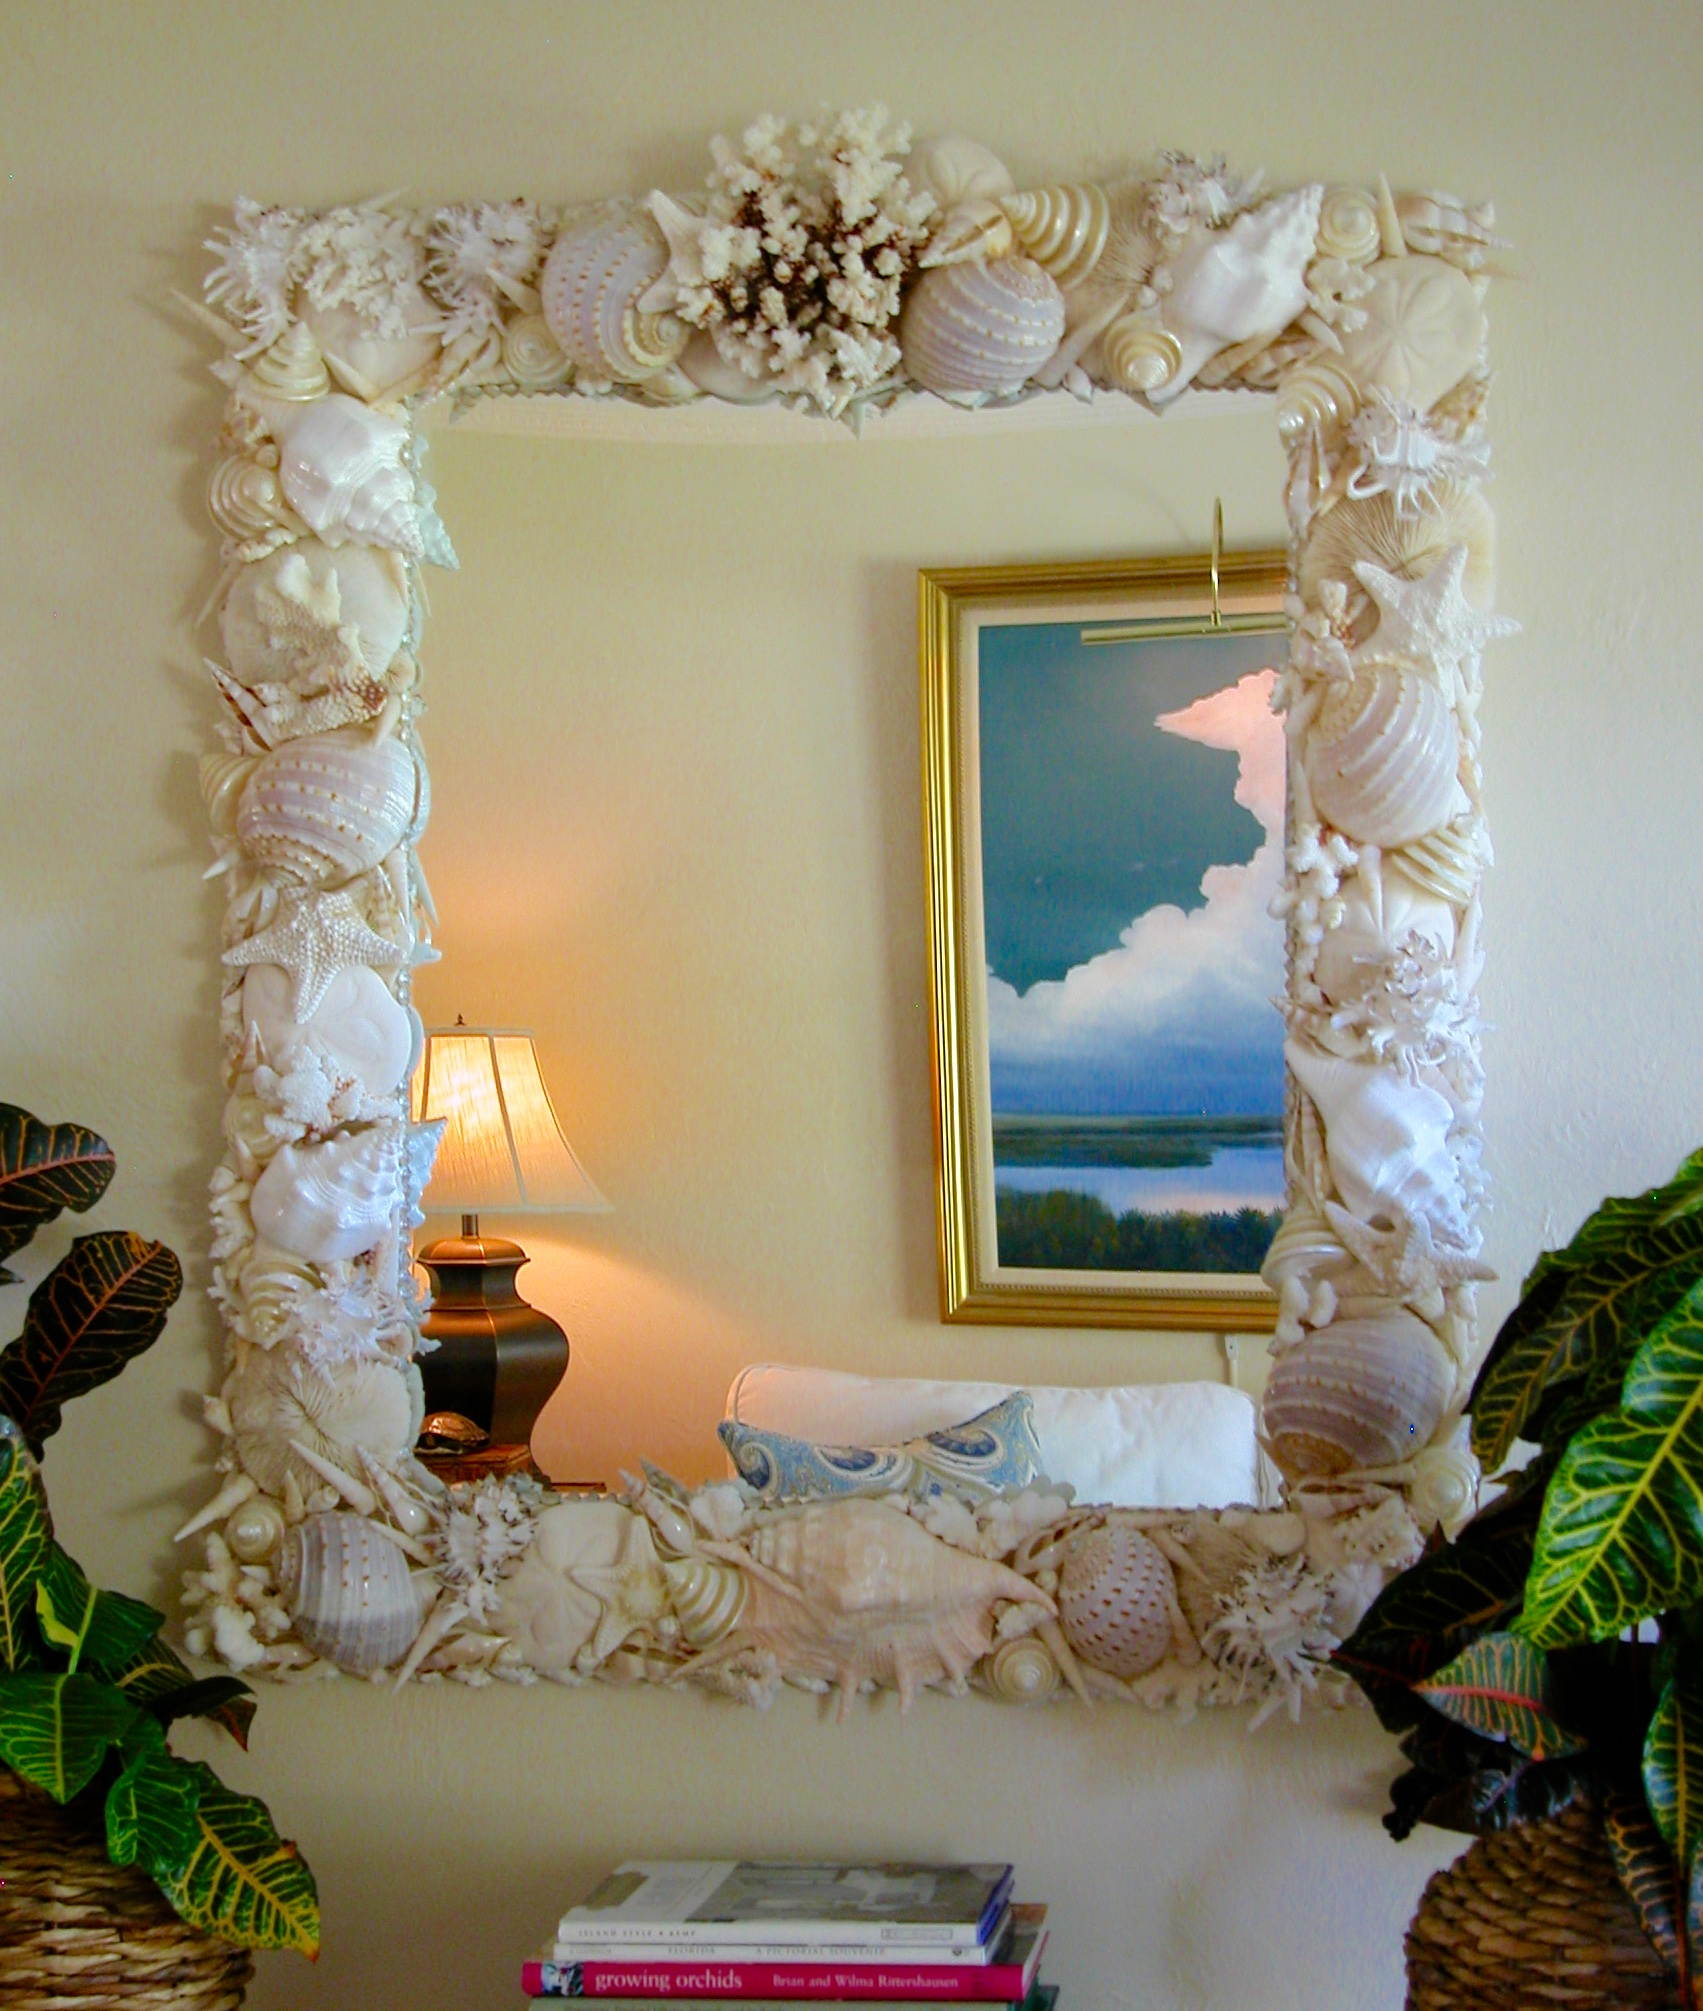 Shell mirror made with large chunky white shells hangs on a white wall.